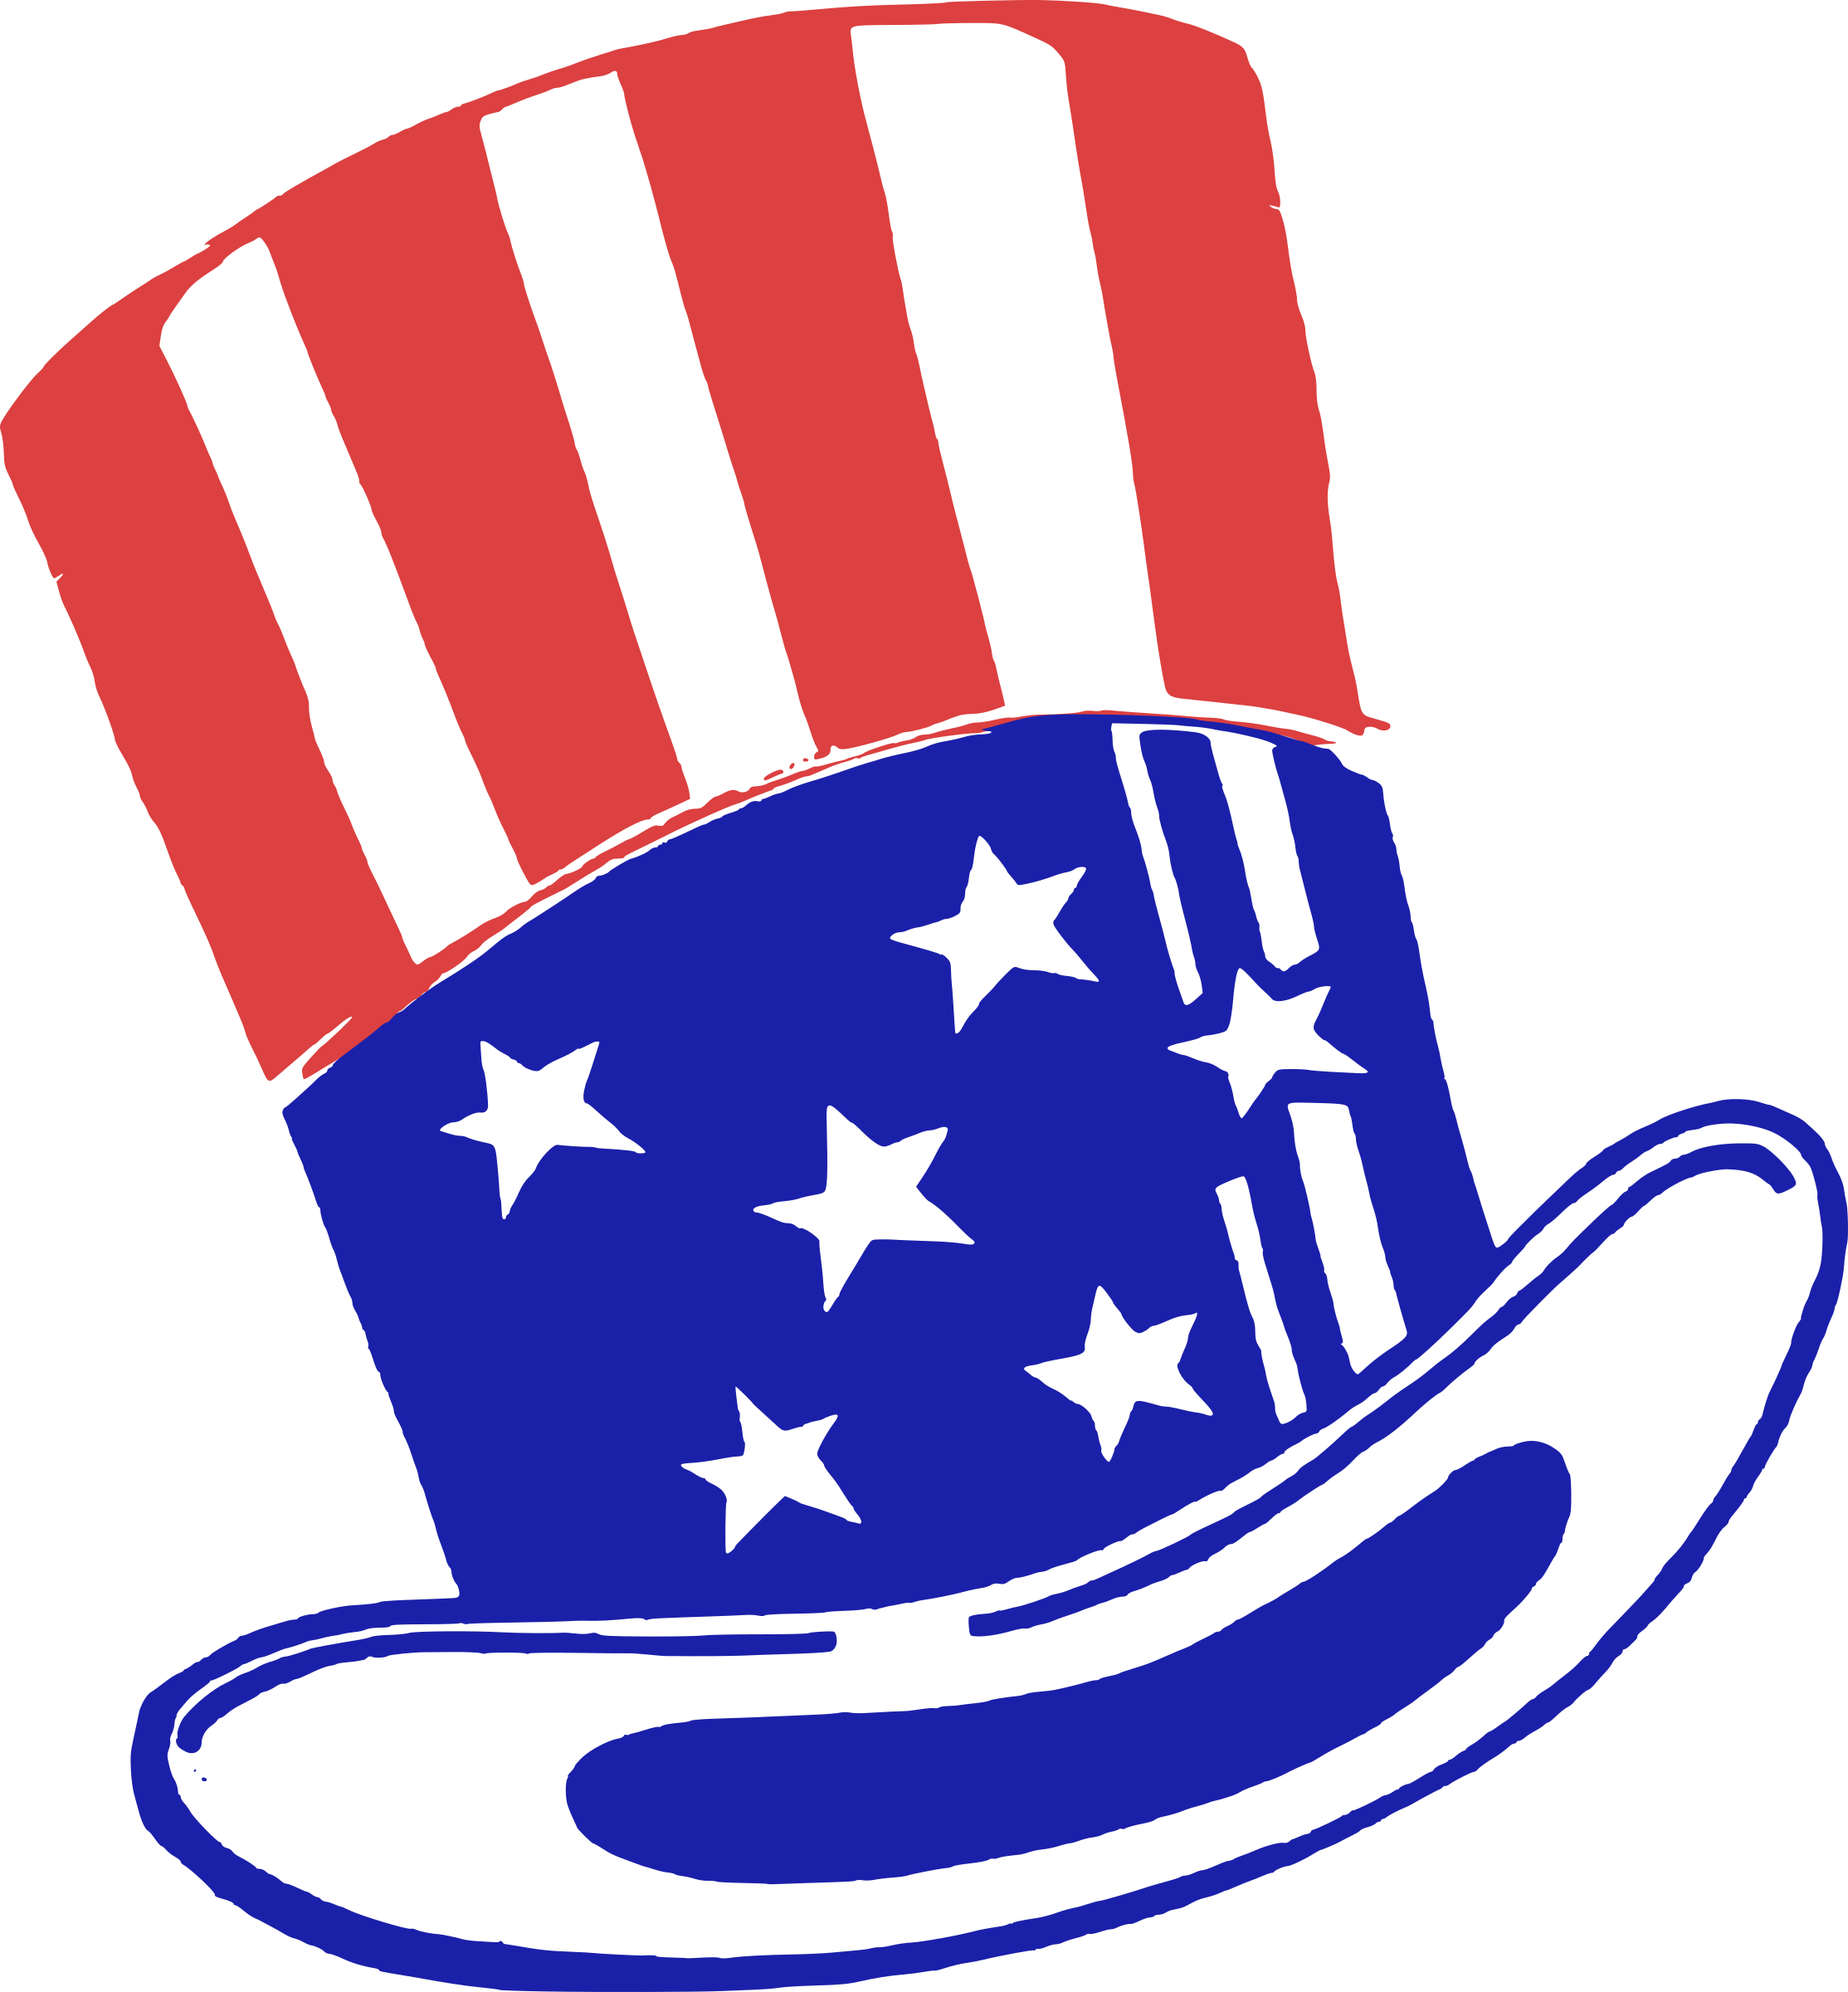 Free clipart uncle sam taking money vector black and white download Uncle Sam Hat Icons PNG - Free PNG and Icons Downloads vector black and white download